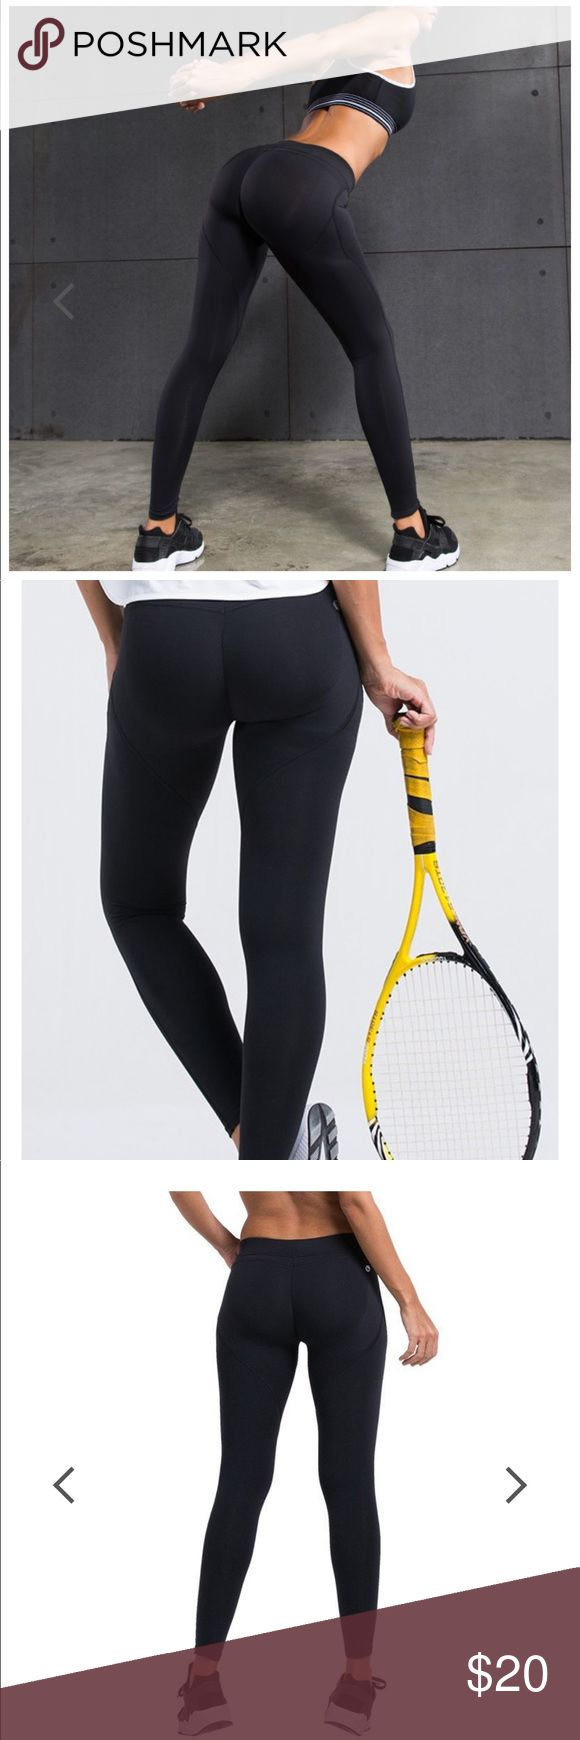 Women's Yoga Pants with Super Tush Trainer™ NEW, black compression yoga pants with built in Tush Trainer™ lifter and support. Instantly start to shape your rear into that perfect position to take advantage muscle memory and get results faster! Size small, black. Original price online $45 plus shipping. Runs small. Pants